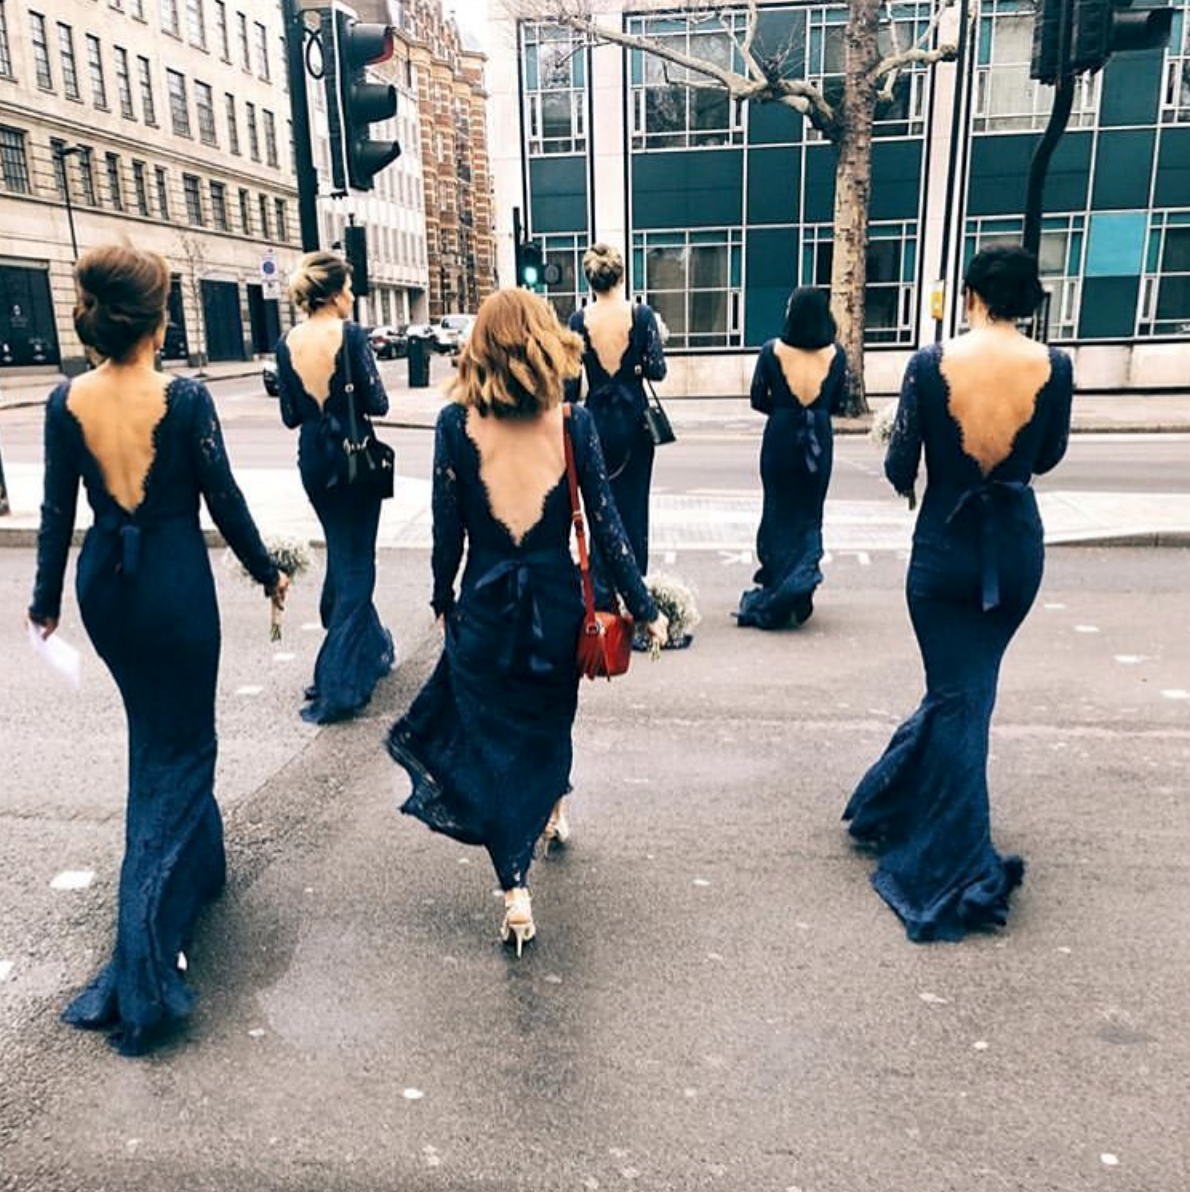 The ultimate gown gang wearing Alara in Navy.